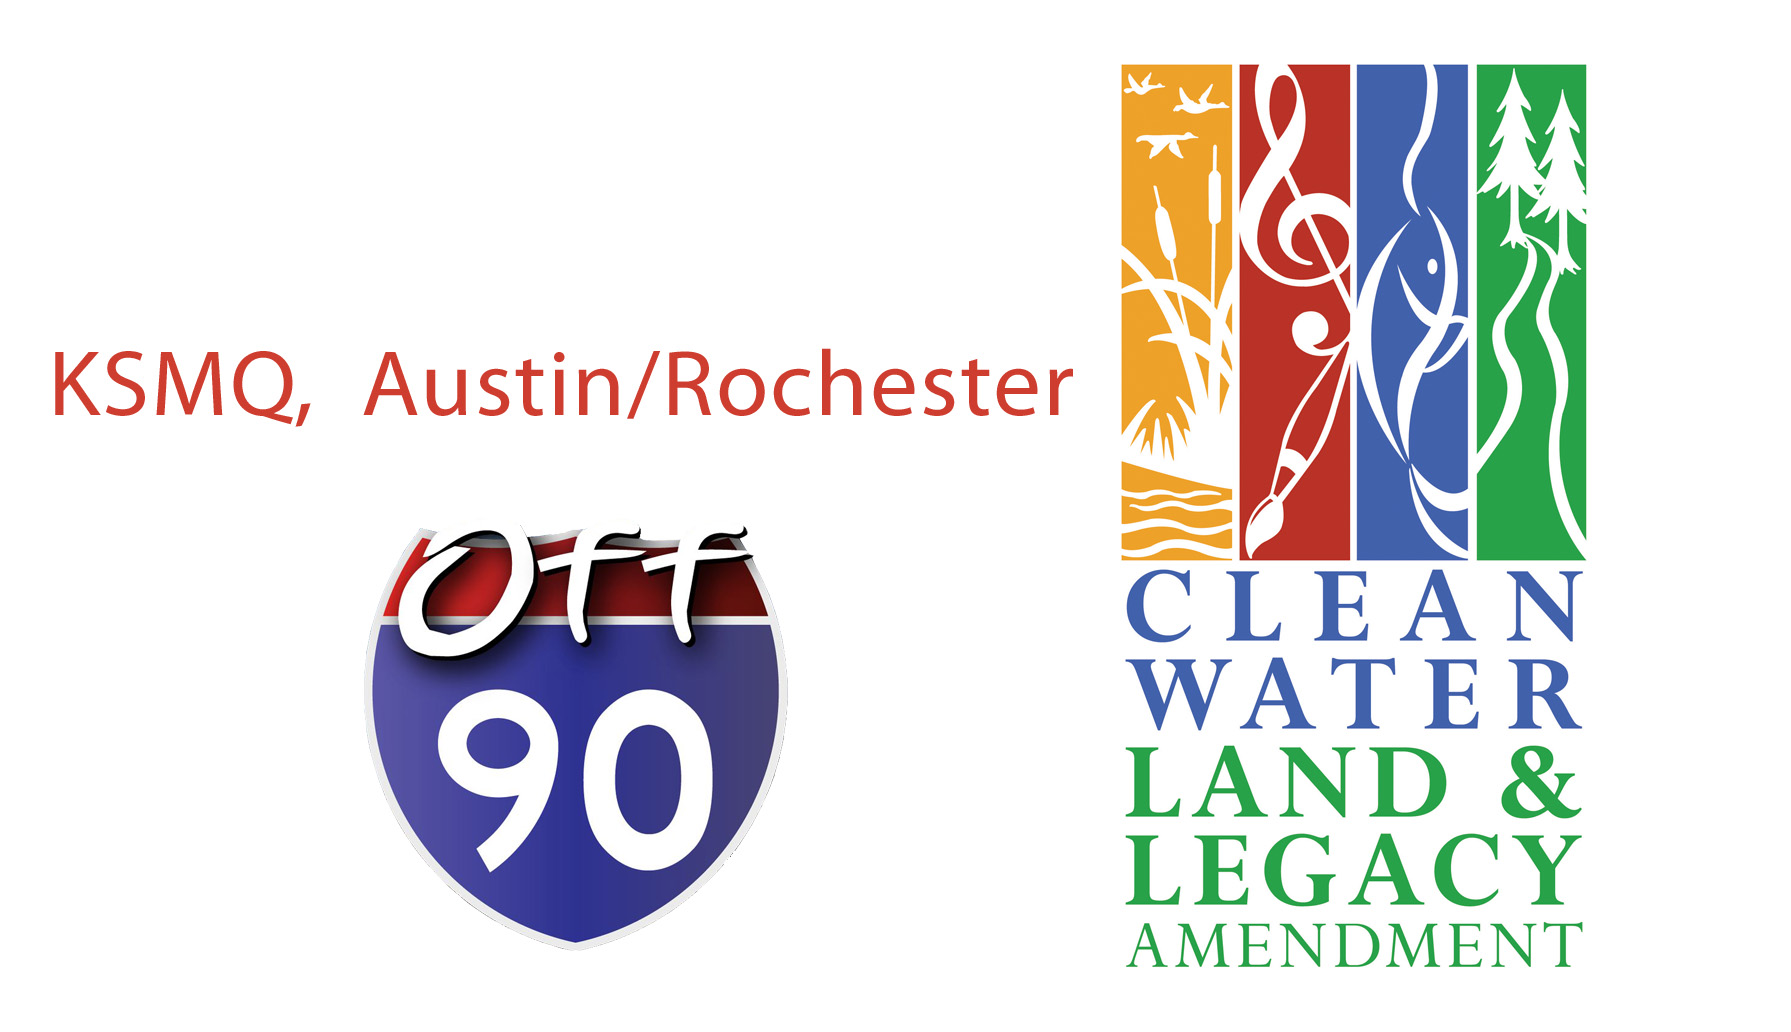 Off 90 celebrating arts culture and history in southern minnesota